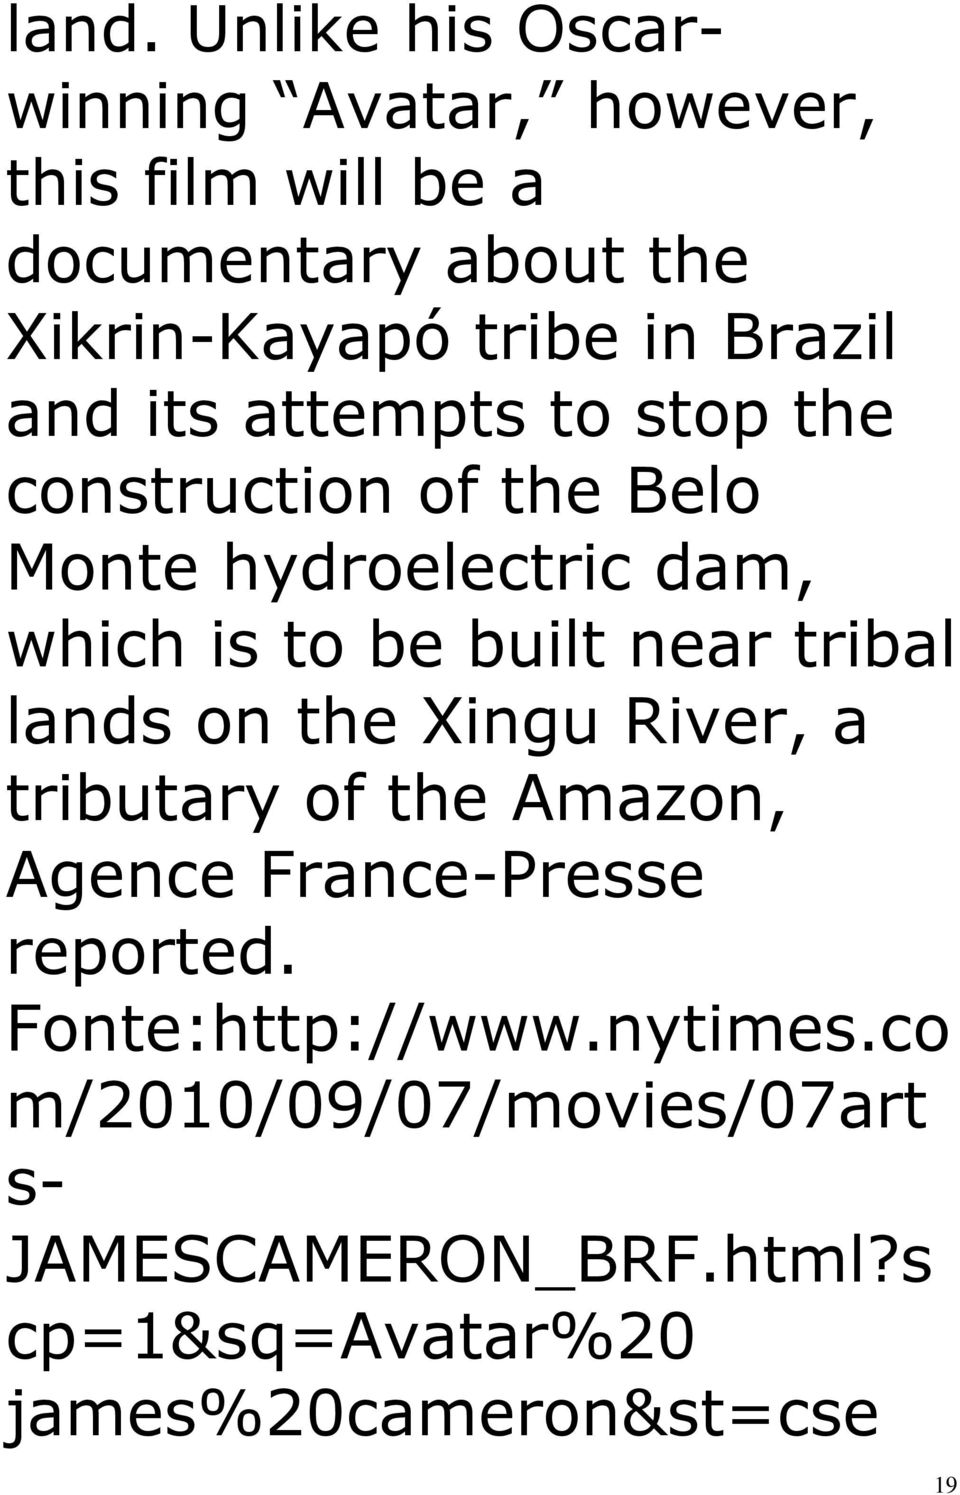 near tribal lands on the Xingu River, a tributary of the Amazon, Agence France-Presse reported.